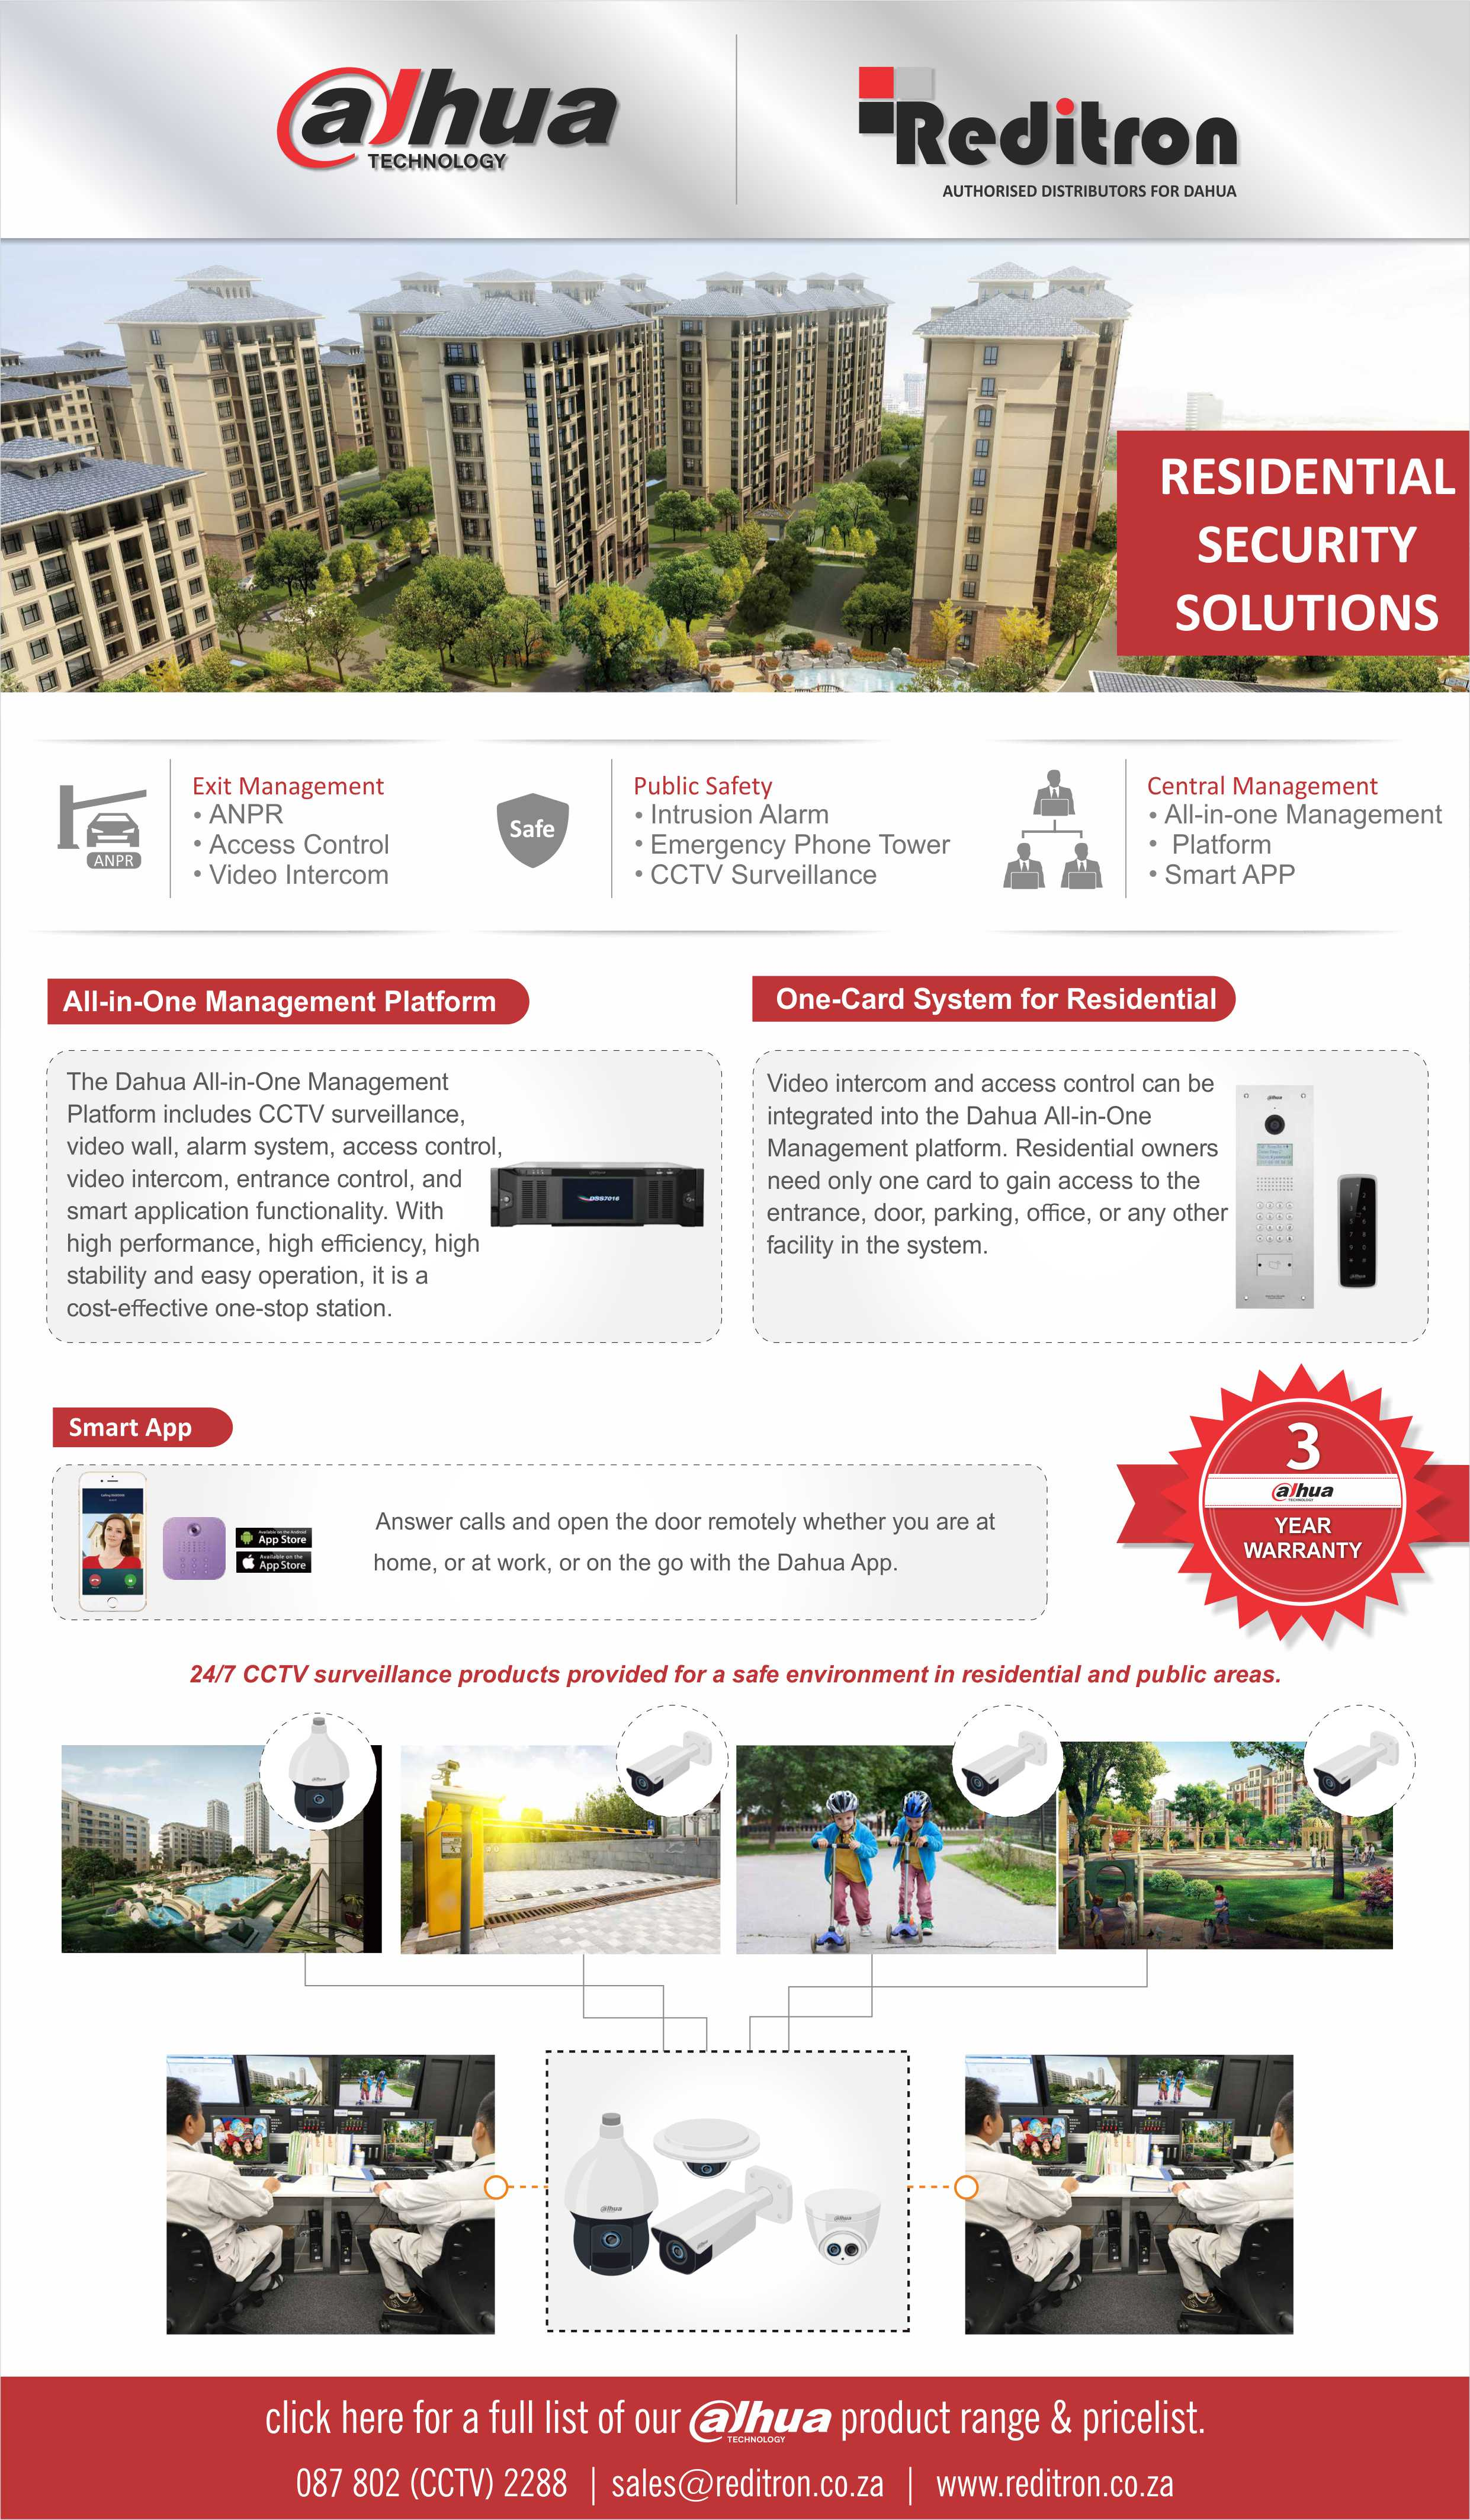 2017 Oct Dahua Residential Solutions Reditron Emailer